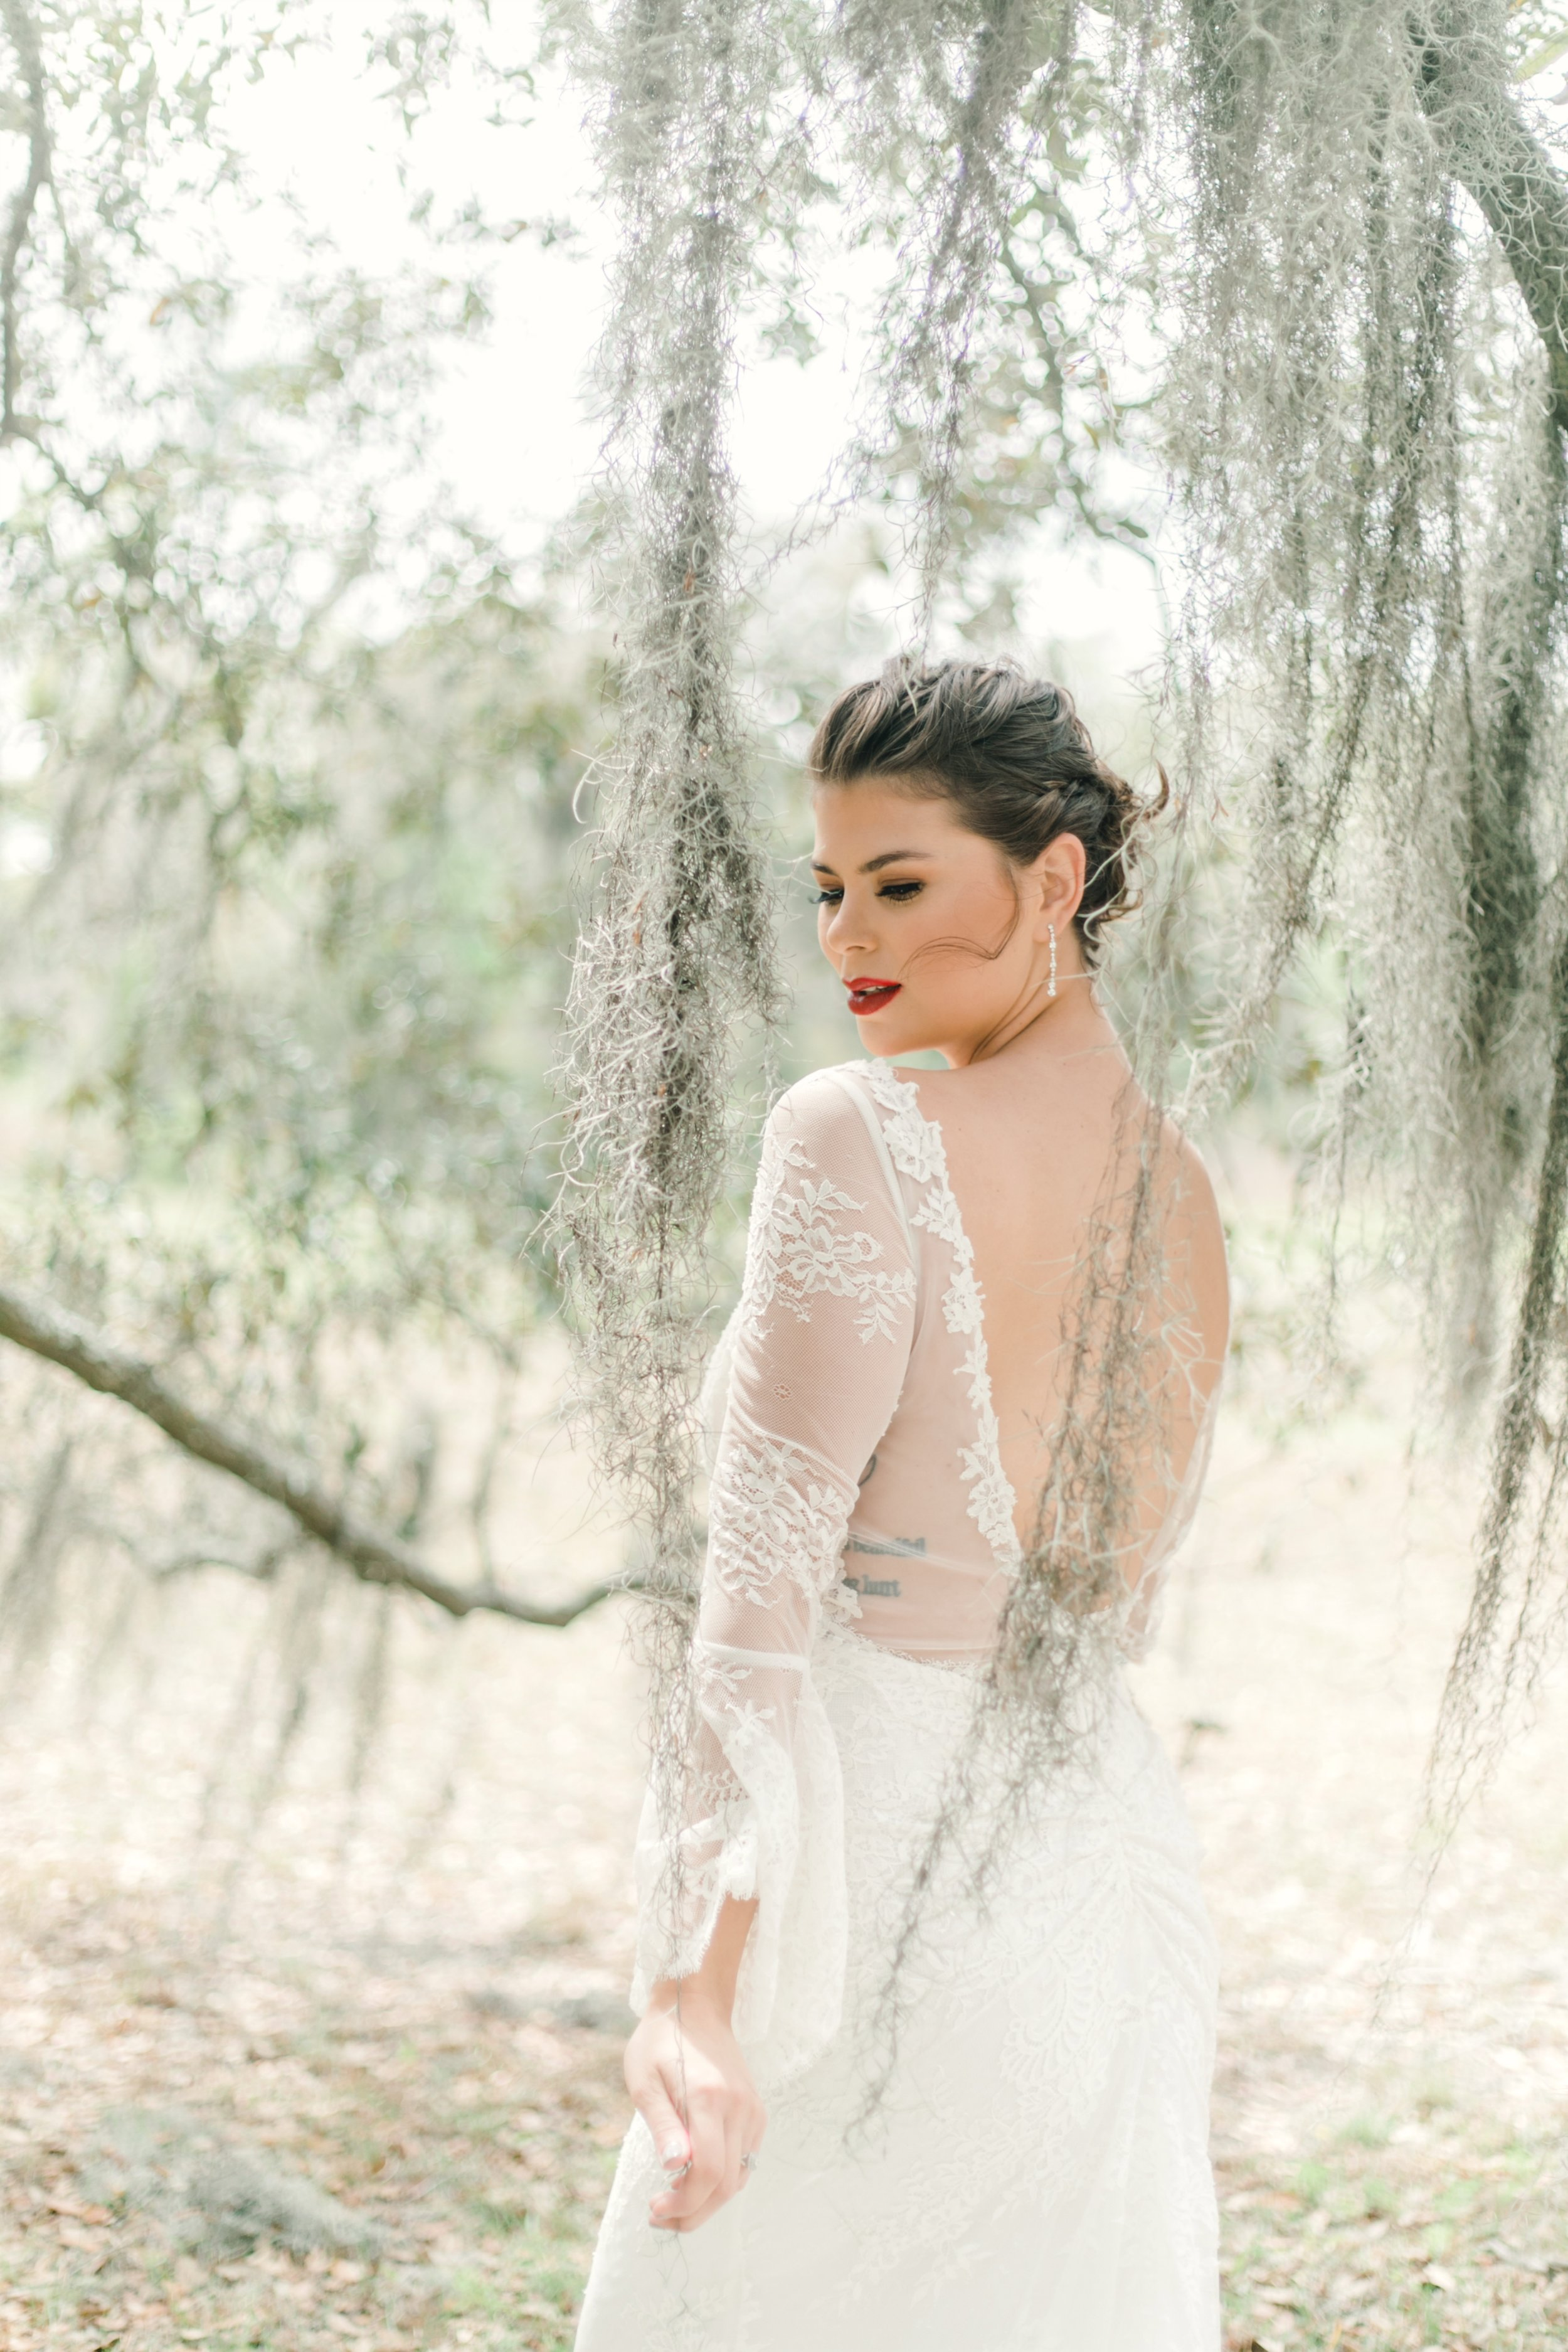 lamour-by-calla-blanche-amber-long-sleeve-wedding-dress-lace-wedding-dress-wormsloe-historic-park-elopement-wormsloe-wedding-Selyciayangphotograpy-57.jpg